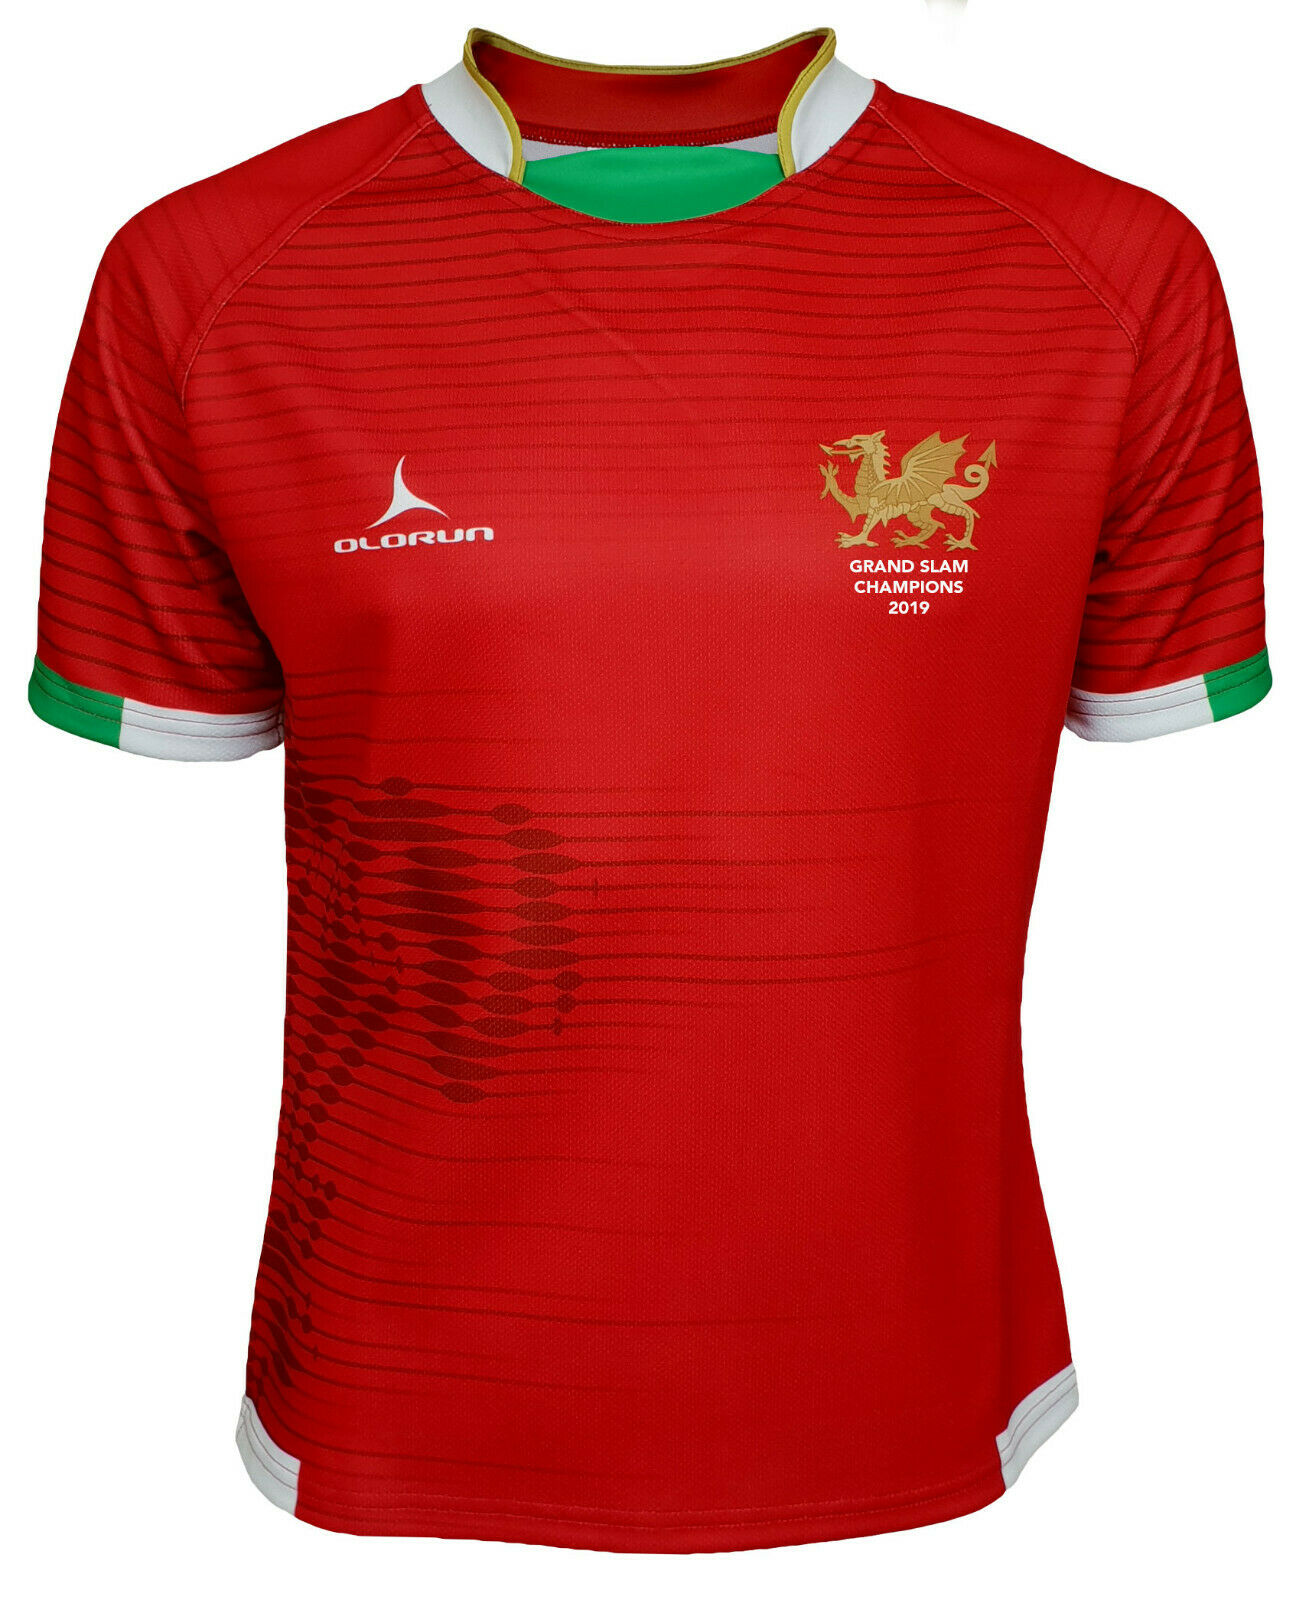 Olorun Wales Grand Slam 2019 Contour Home Nations Home Rugby Shirt XS - 6XL